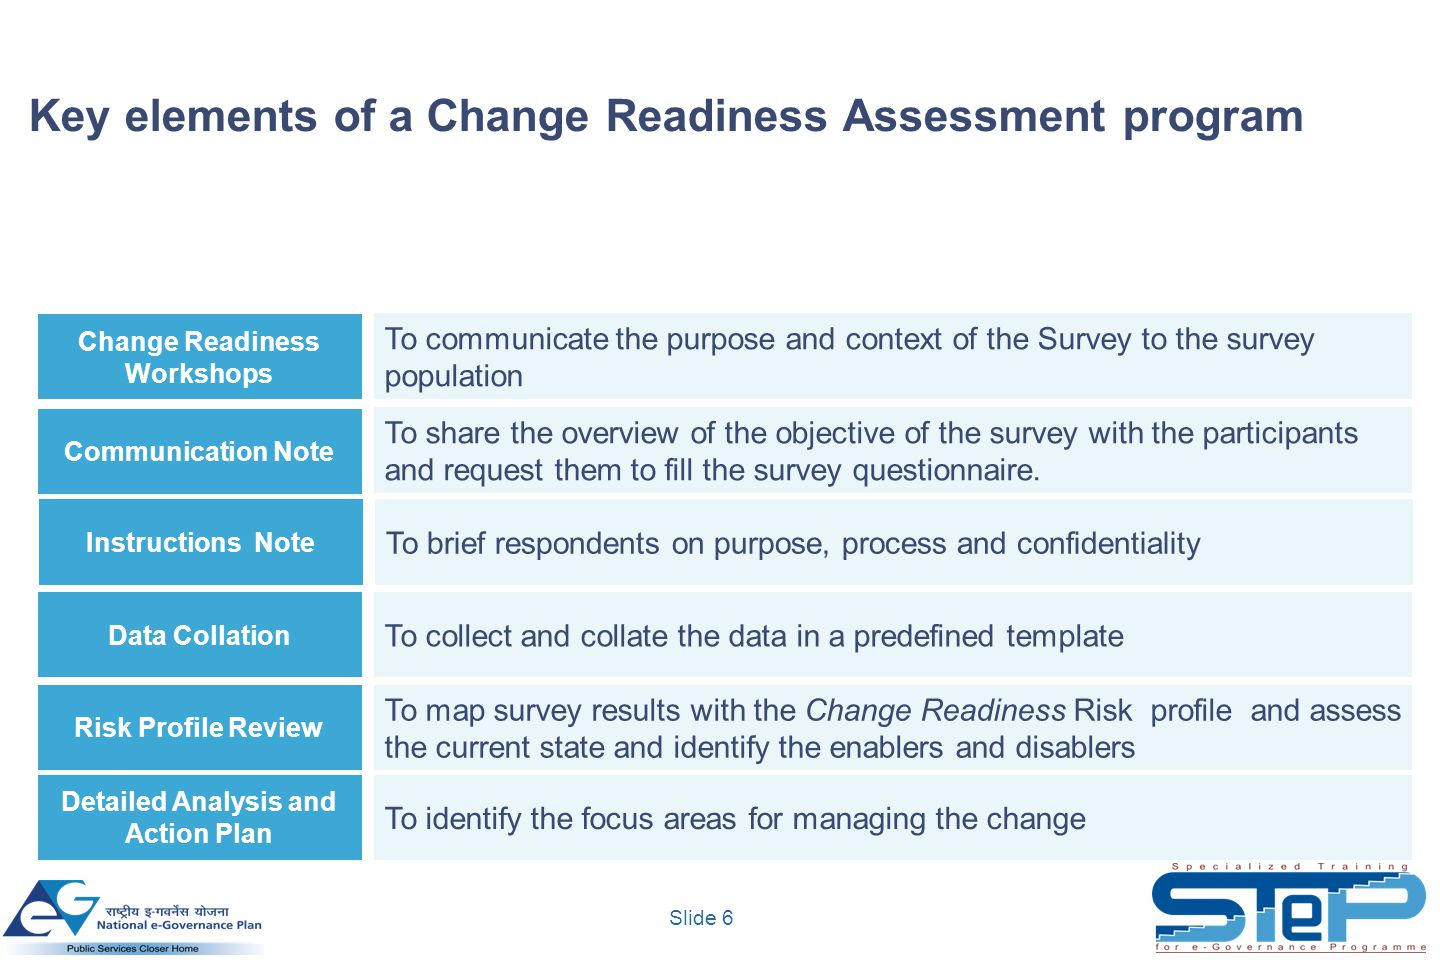 Key elements of a Change Readiness Assessment program